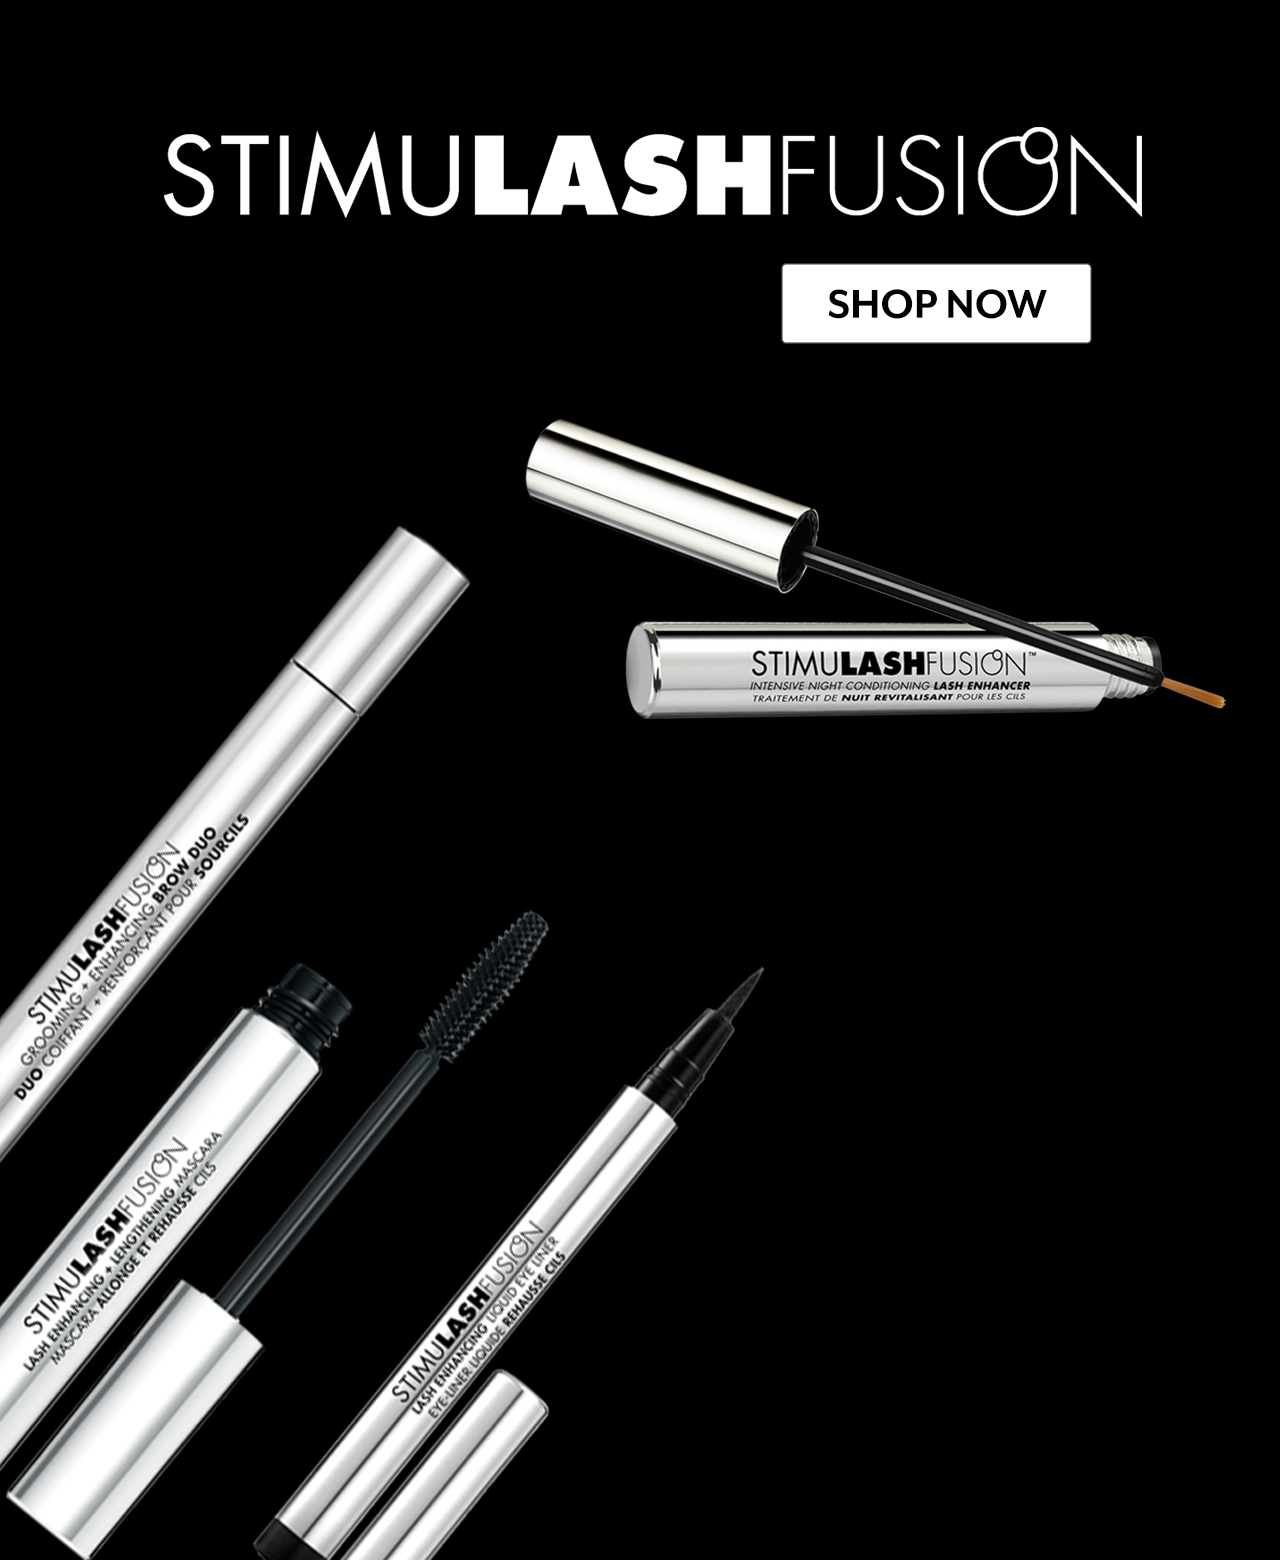 Stimulash Fusion Shop Now